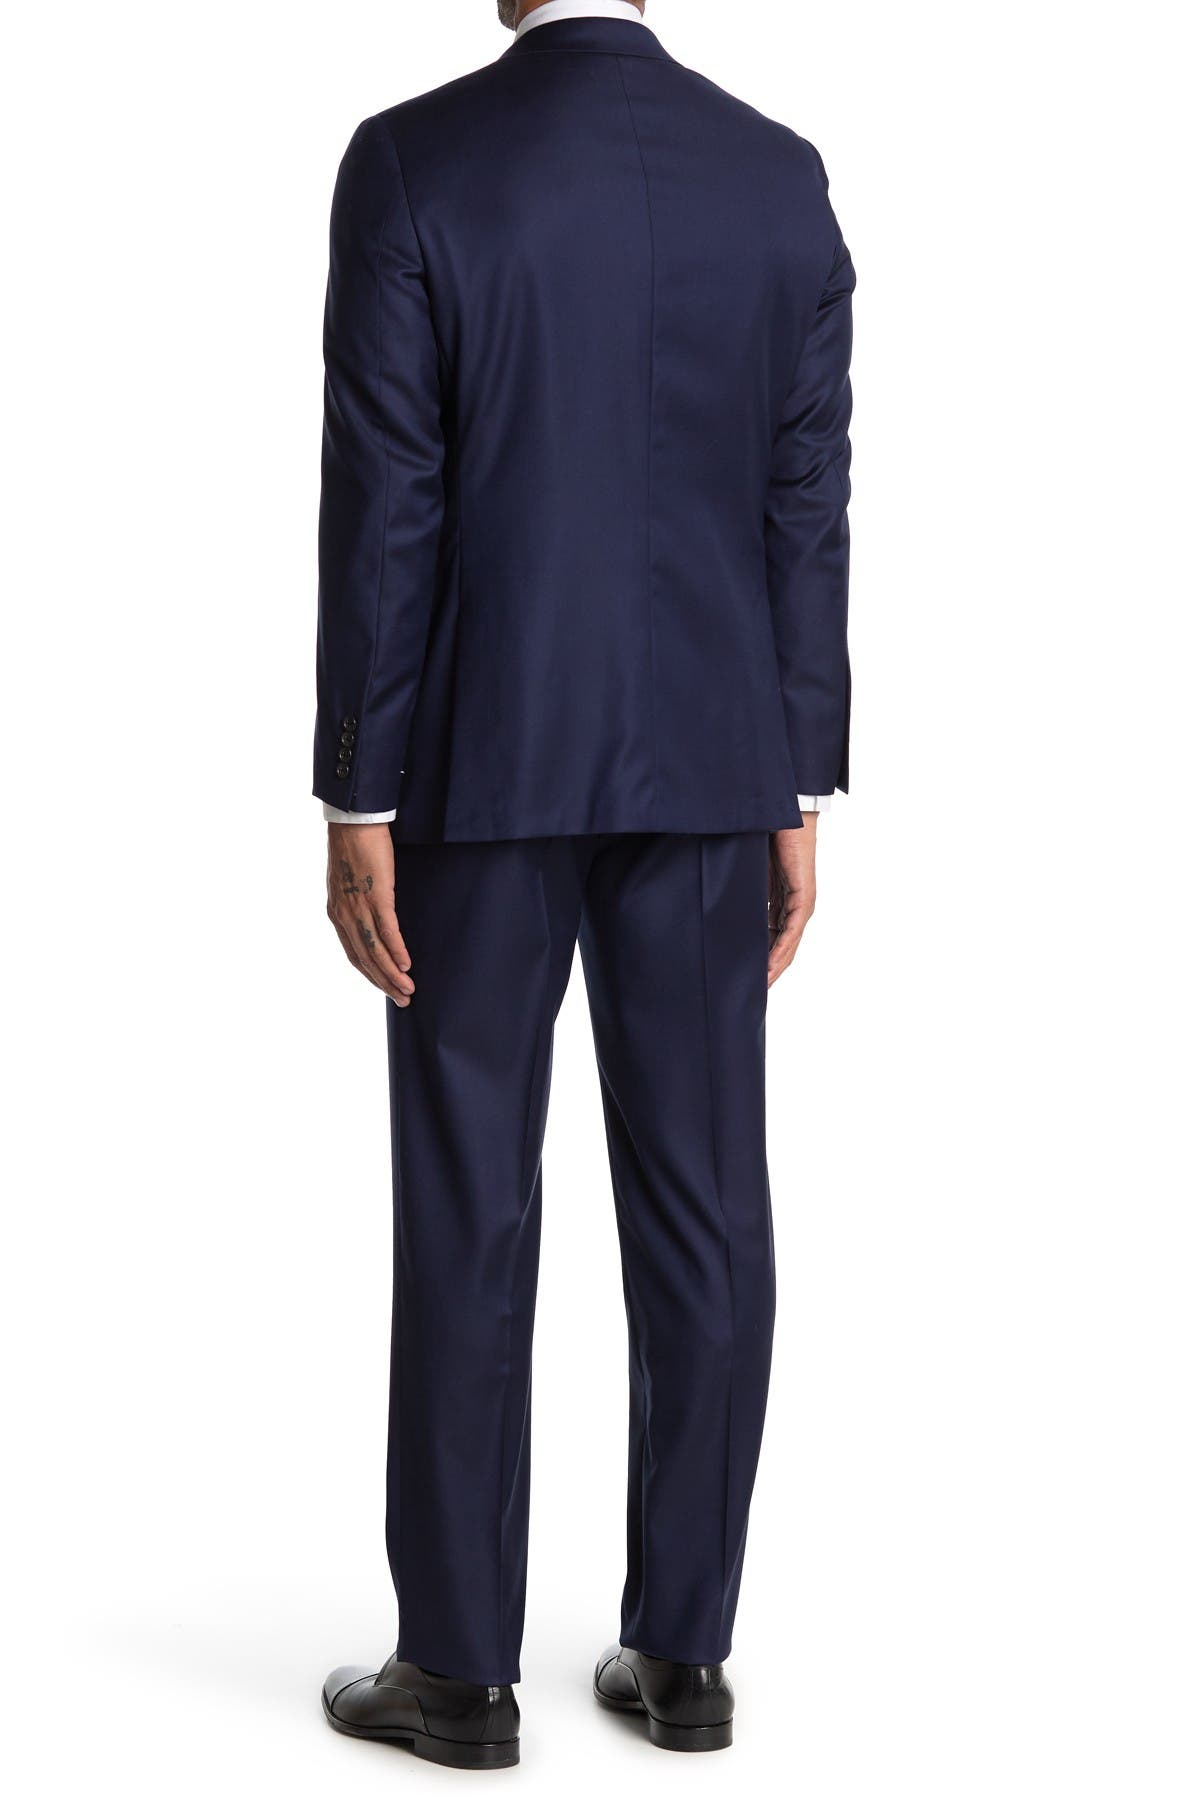 Image of Hickey Freeman Solid Navy Classic Fit Wool Suit